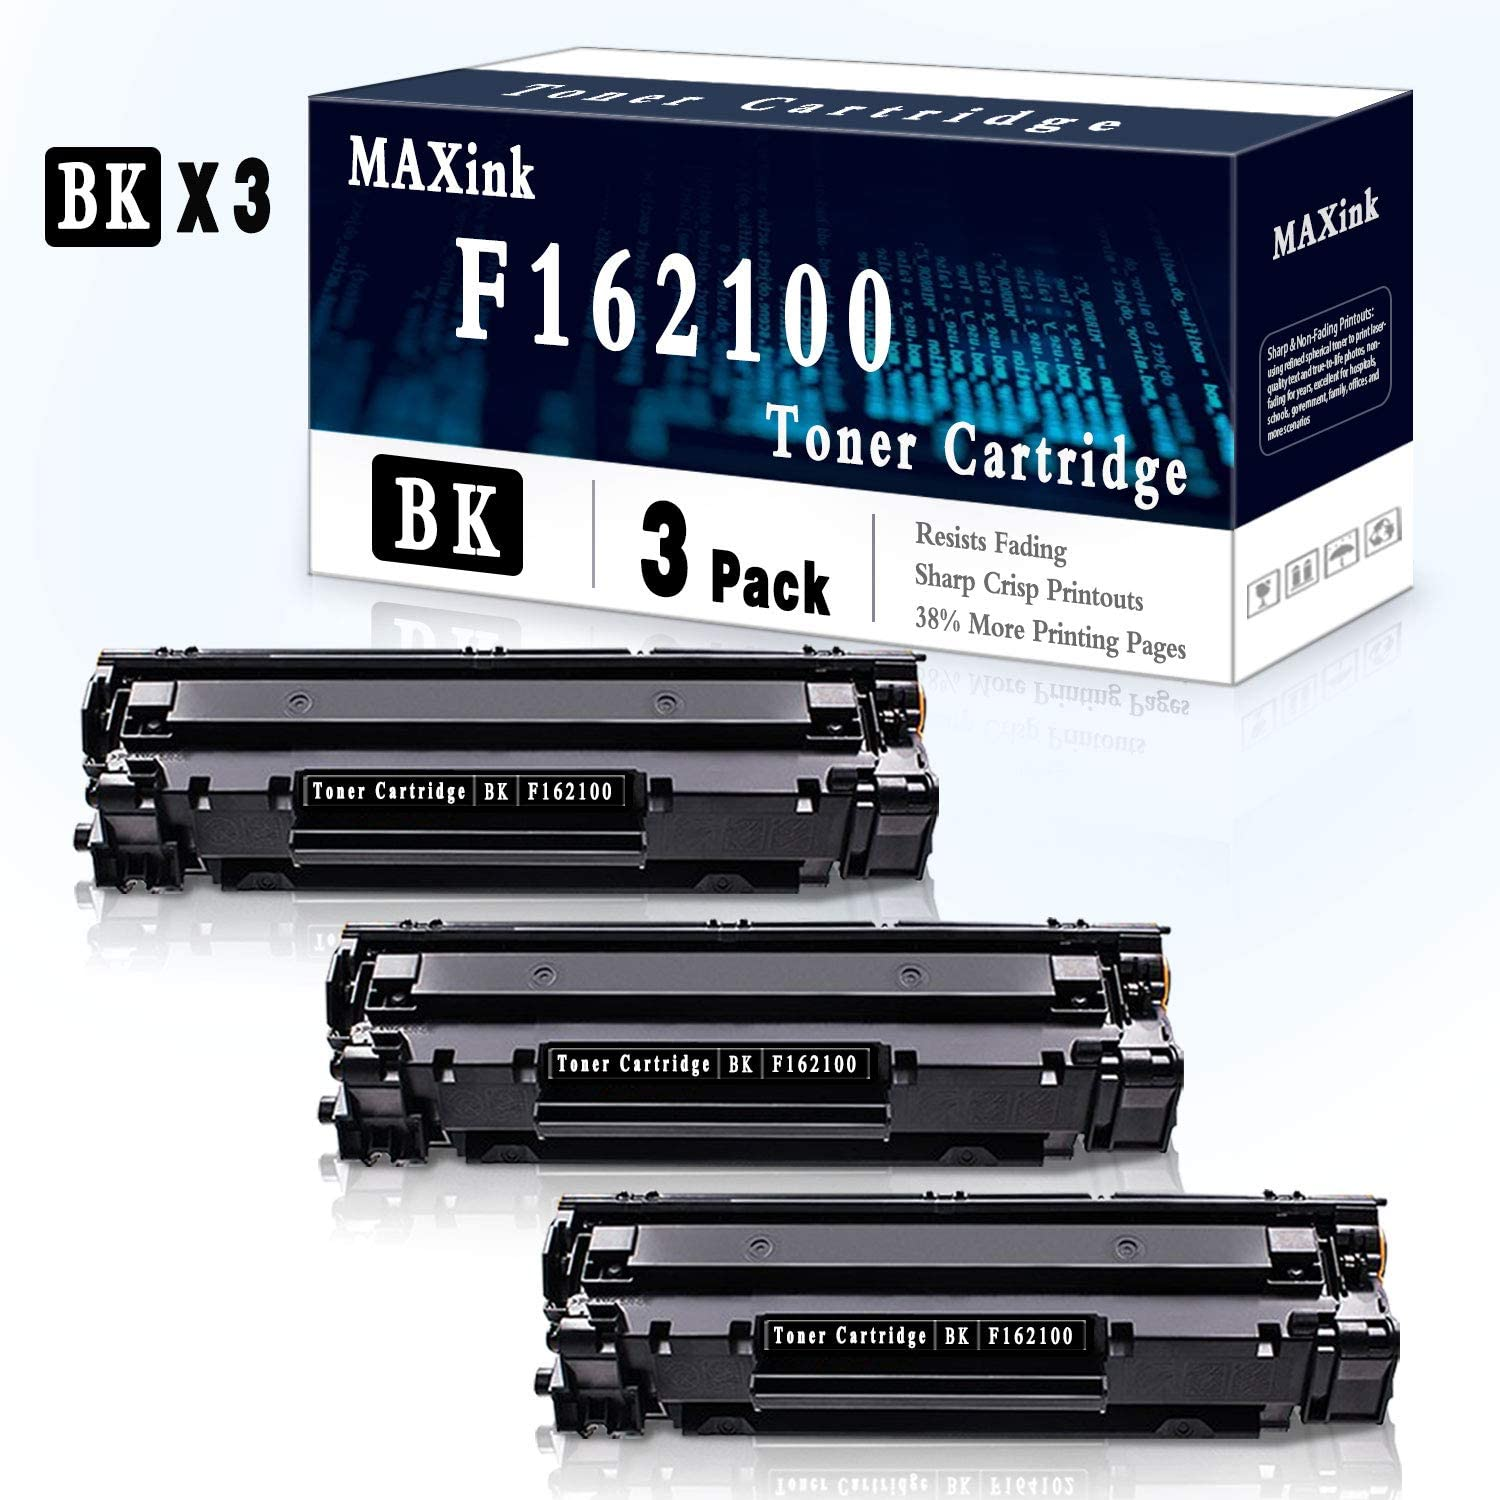 5 Pack Black Toner Cartridge Compatible for Canon F166102 Printer Toner Cartridge-Sold by MAXink